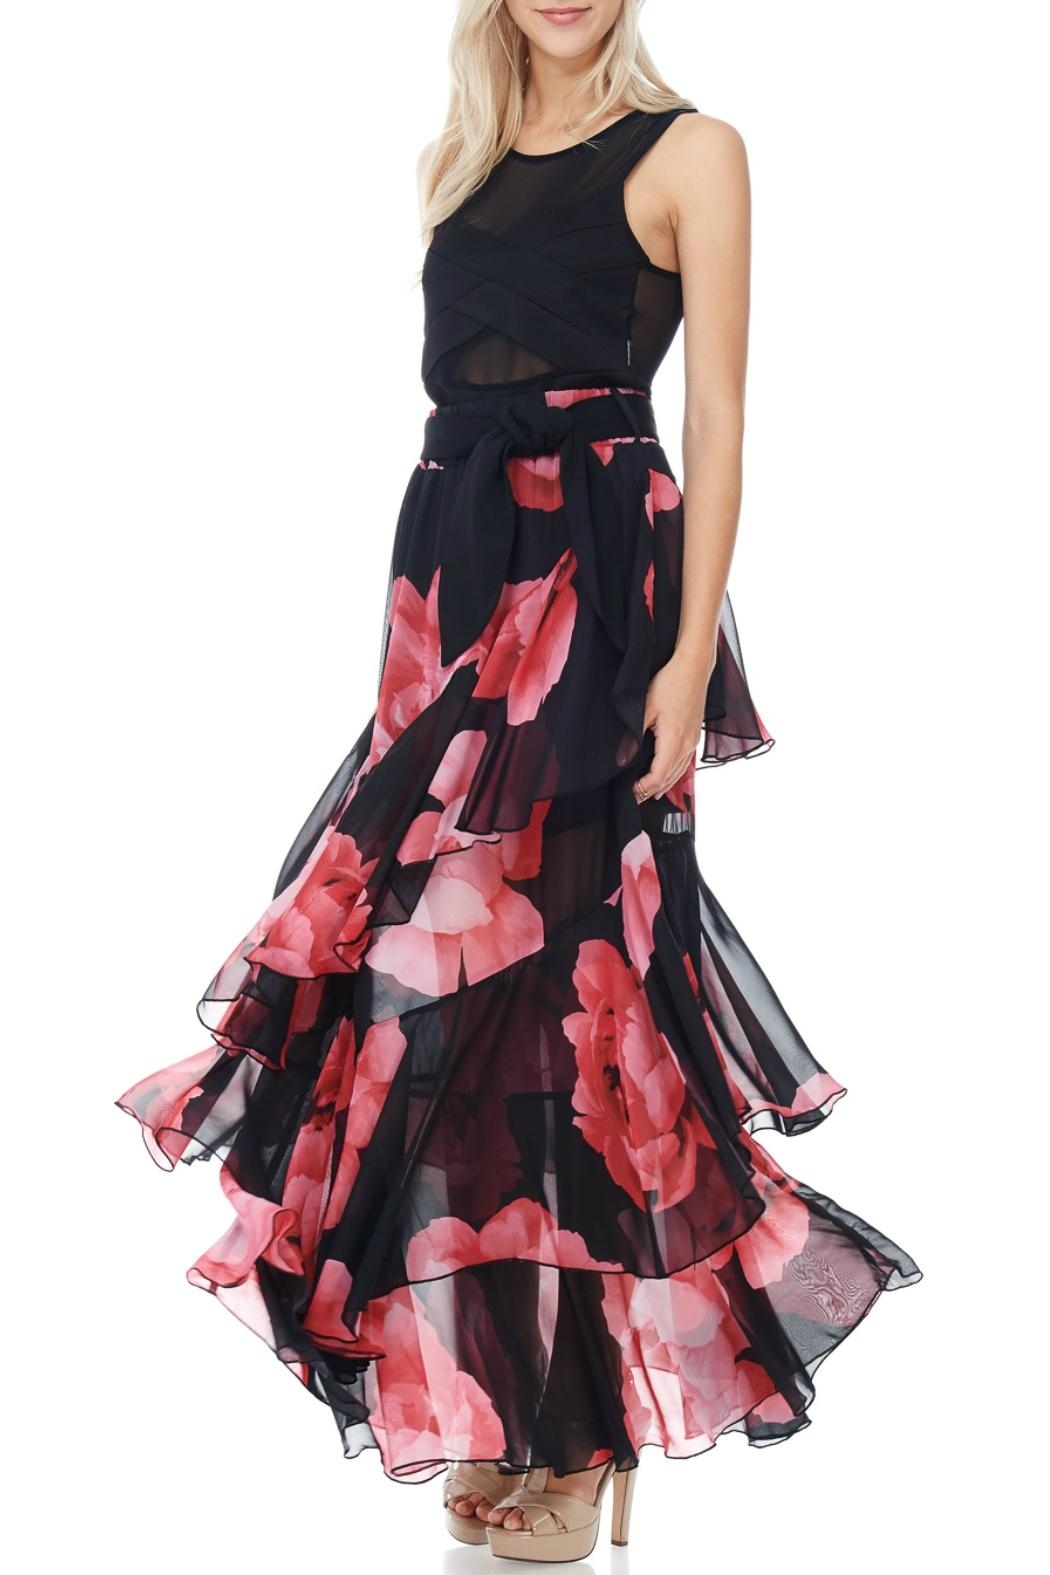 MHGS Tiered Chiffon Skirt - Main Image